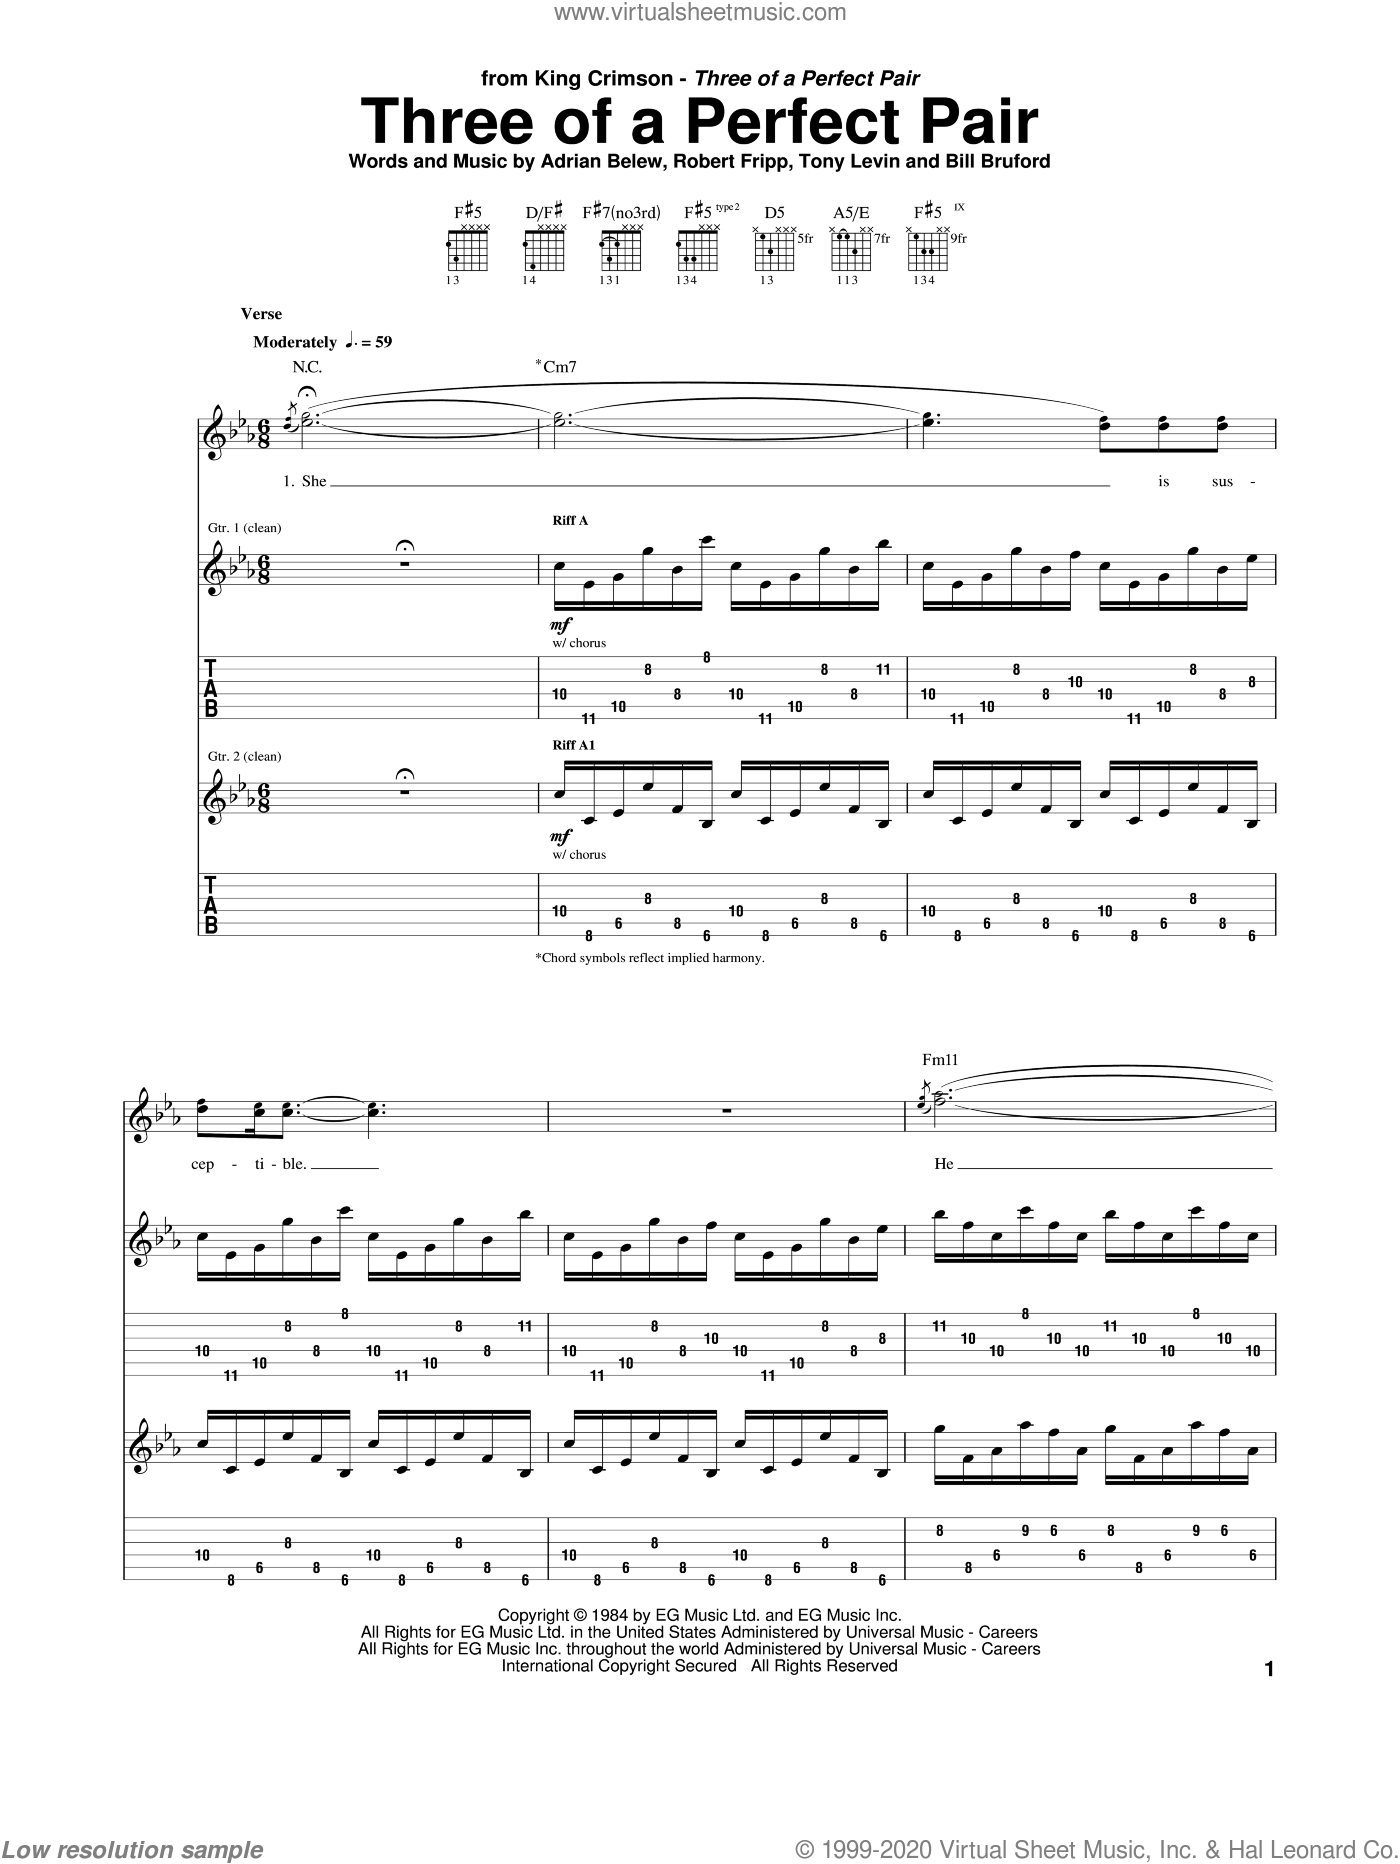 Three Of A Perfect Pair sheet music for guitar (tablature) by King Crimson, Adrian Belew, Bill Bruford, Robert Fripp and Tony Levin, intermediate skill level